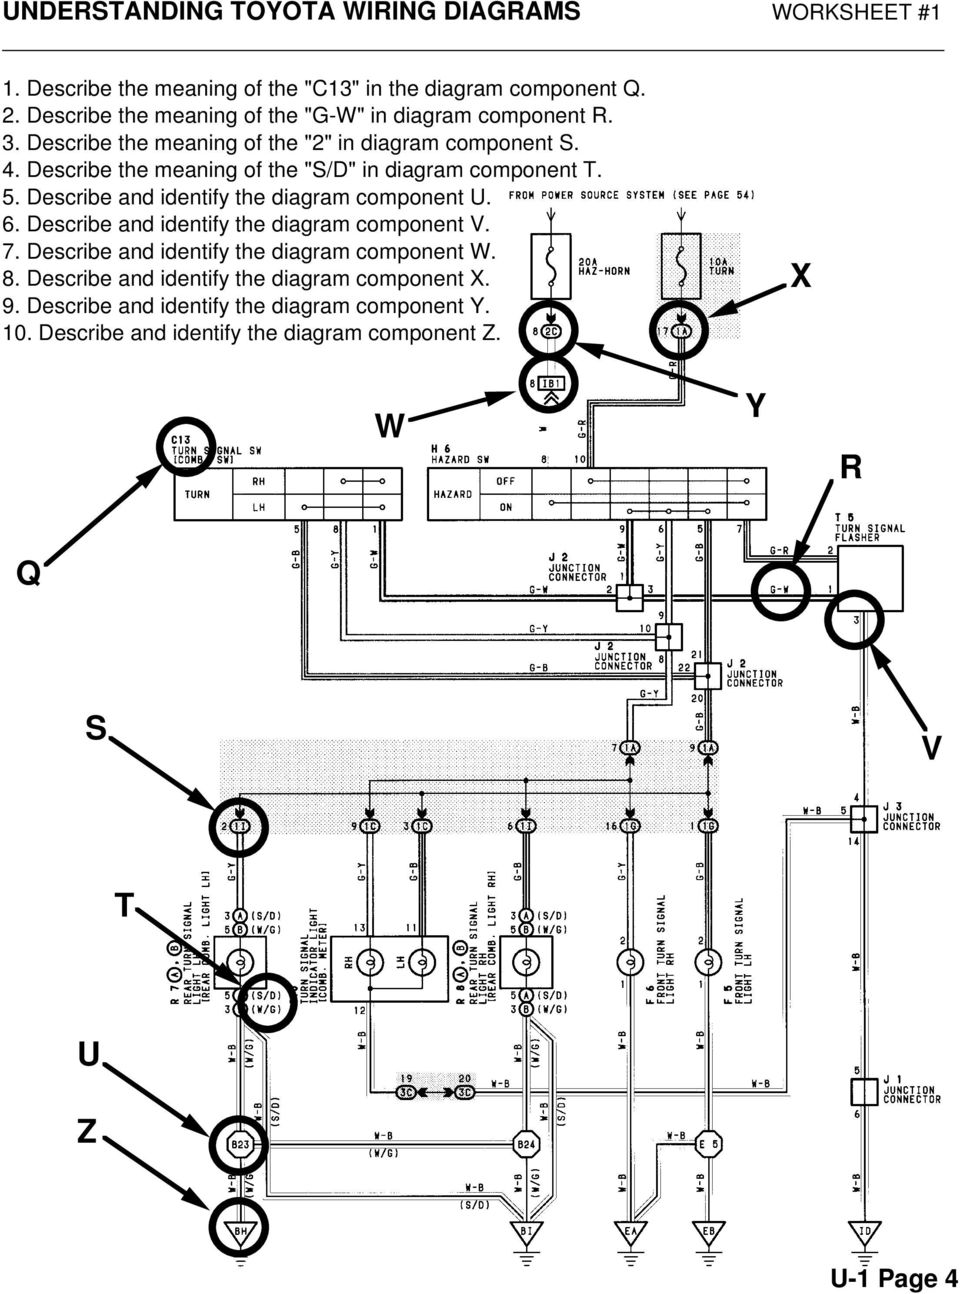 hight resolution of describe the meaning of the s d in diagram component t 5 7 understanding toyota wiring